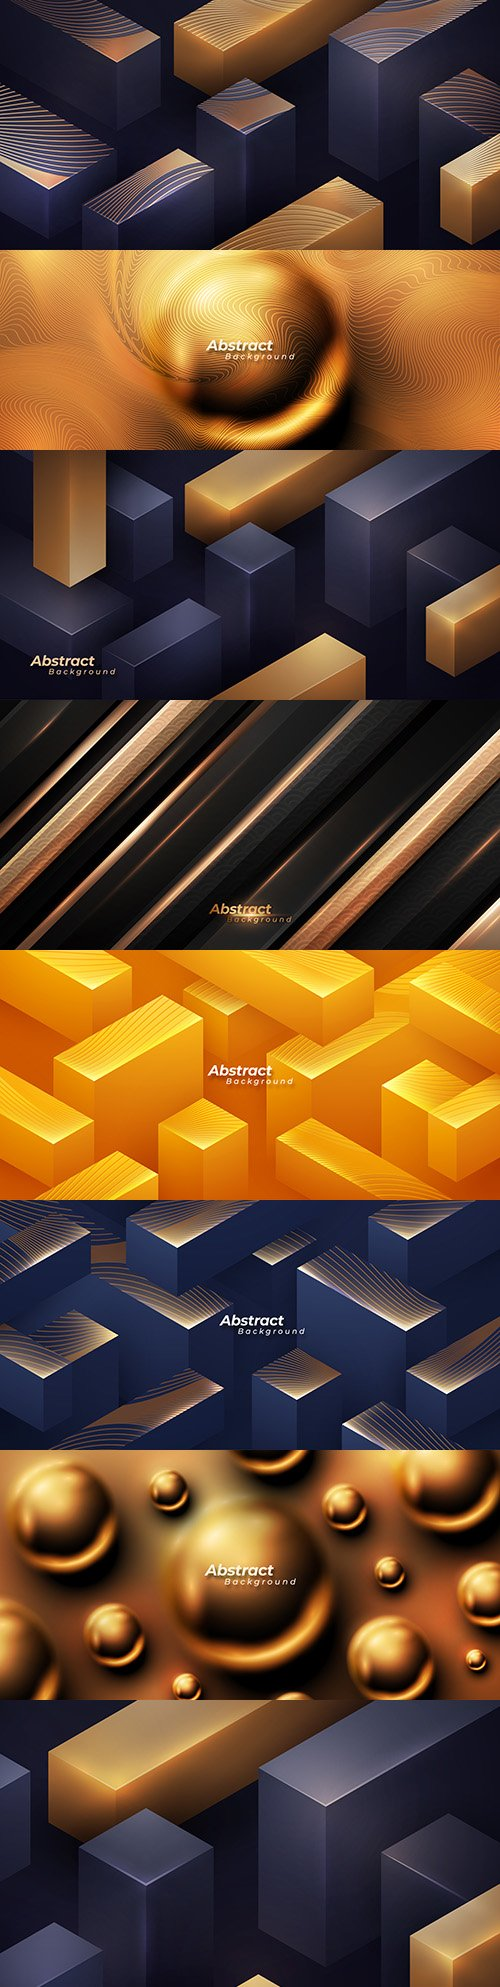 Golden abstract flickering balls and geometric background